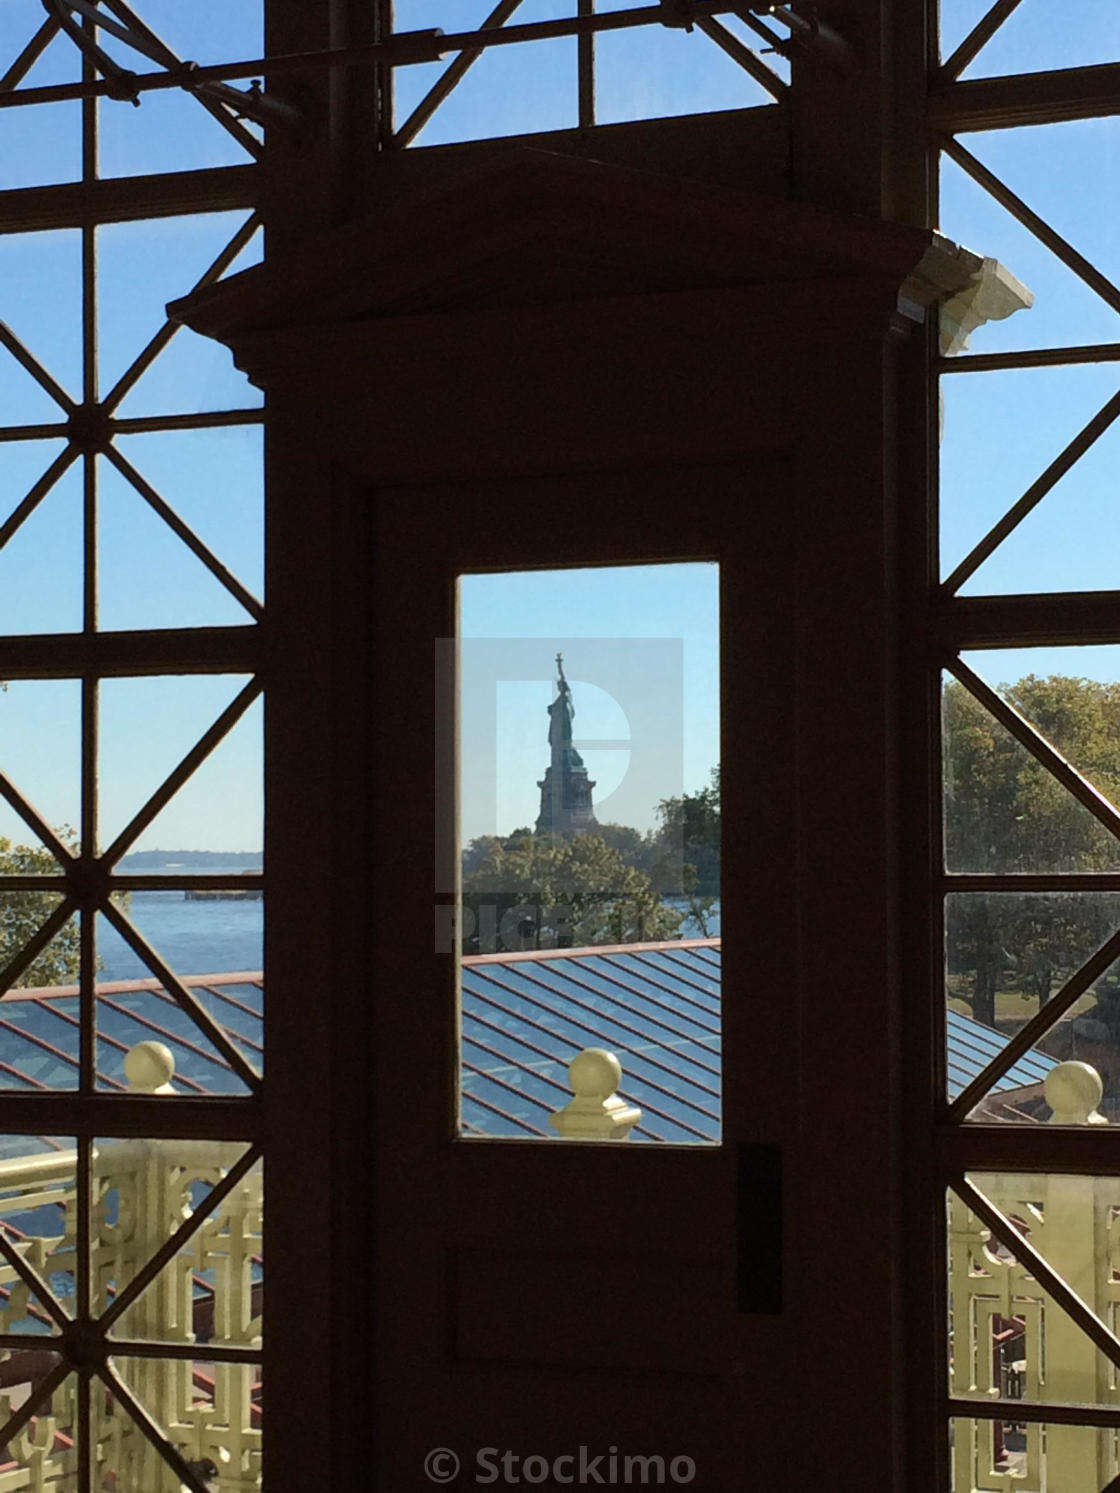 """""""The Statue of Liberty as seen from the Registration Room of the Ellis Island Immigration Museum in New York."""" stock image"""